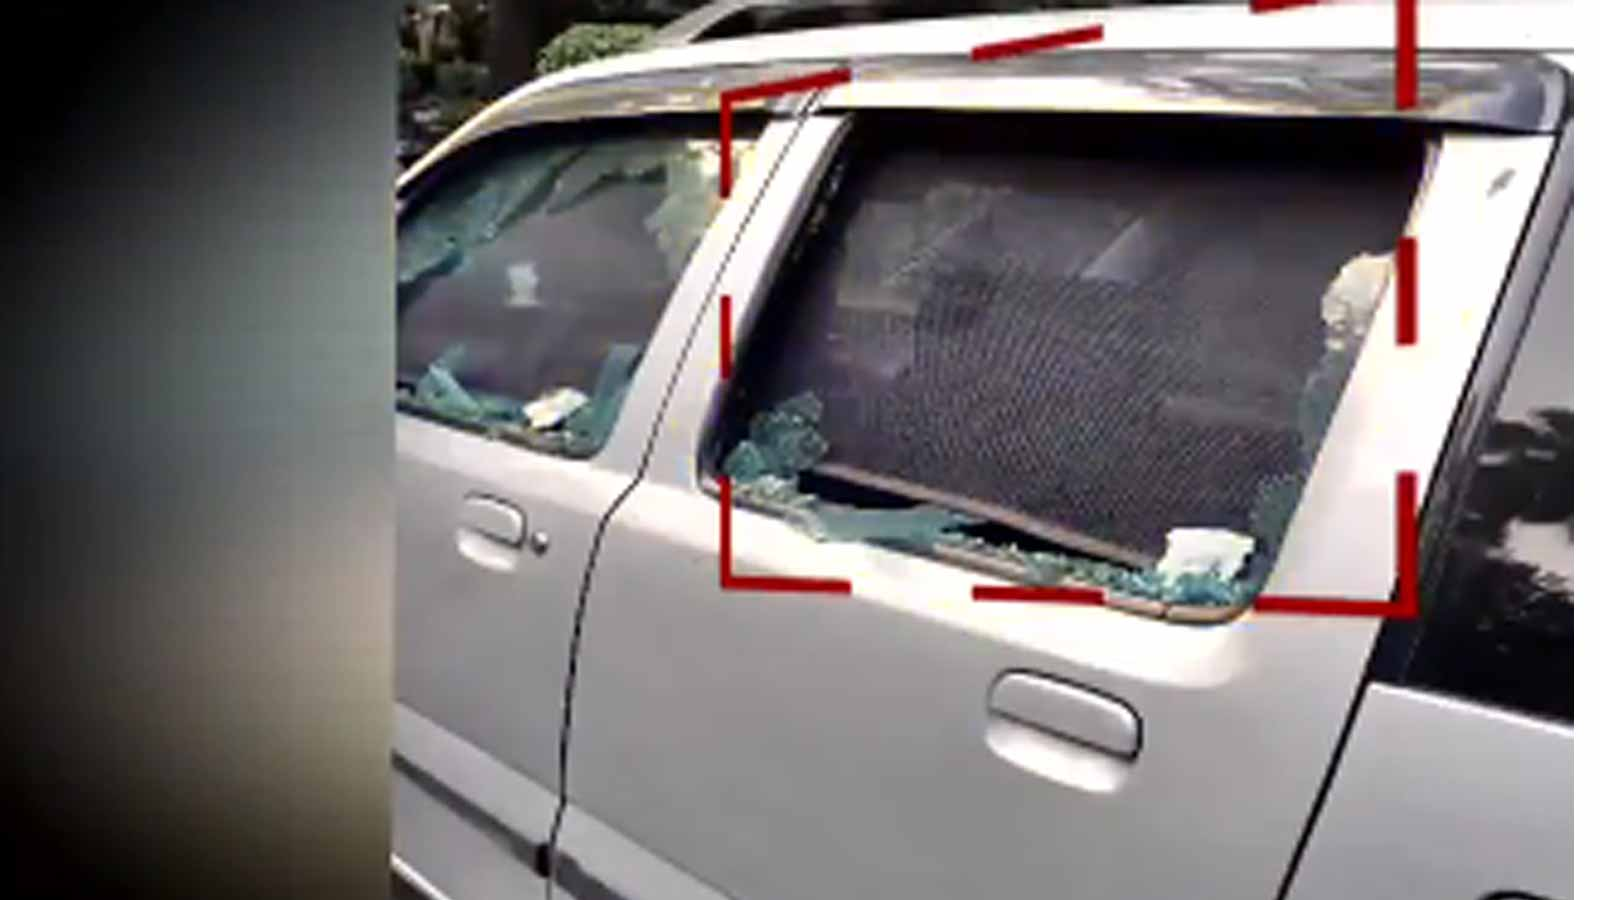 four-students-from-ladakh-arrested-in-israel-embassy-blast-case